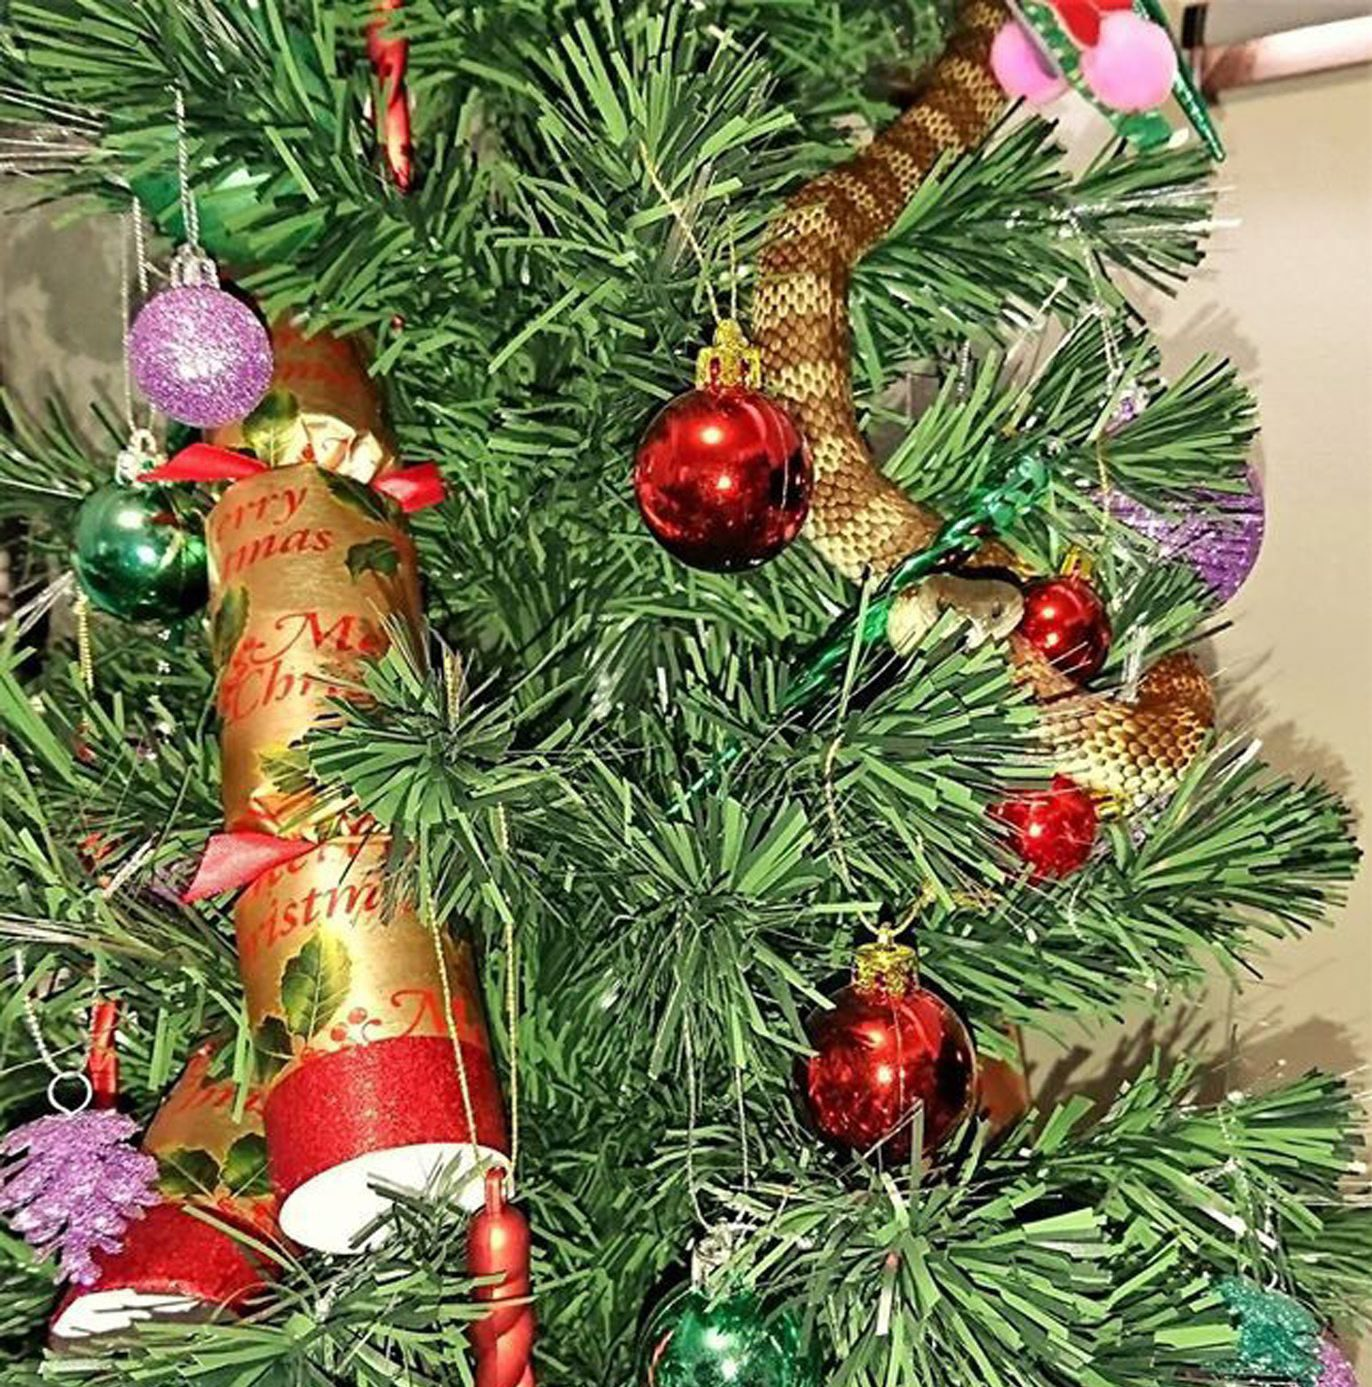 epa05681789 An undated handout picture made available by Snake Catcher Victoria Australia on 19 December 2016 shows a snake (top-L) hanging around a Christmas tree in a suburban home in Melbourne, Victoria, Australia. A woman from Frankston got an early Christmas surprise when she found a highly venomous tiger snake hanging among her Christmas tree decorations. After being caught by snake catcher Barry Goldsmit, the snake was reportedly released back to the wild. EPA/SNAKE CATCHER VICTORIA -- BEST QUALITY AVAILABLE -- AUSTRALIA AND NEW ZEALAND OUT HANDOUT EDITORIAL USE ONLY/NO SALES